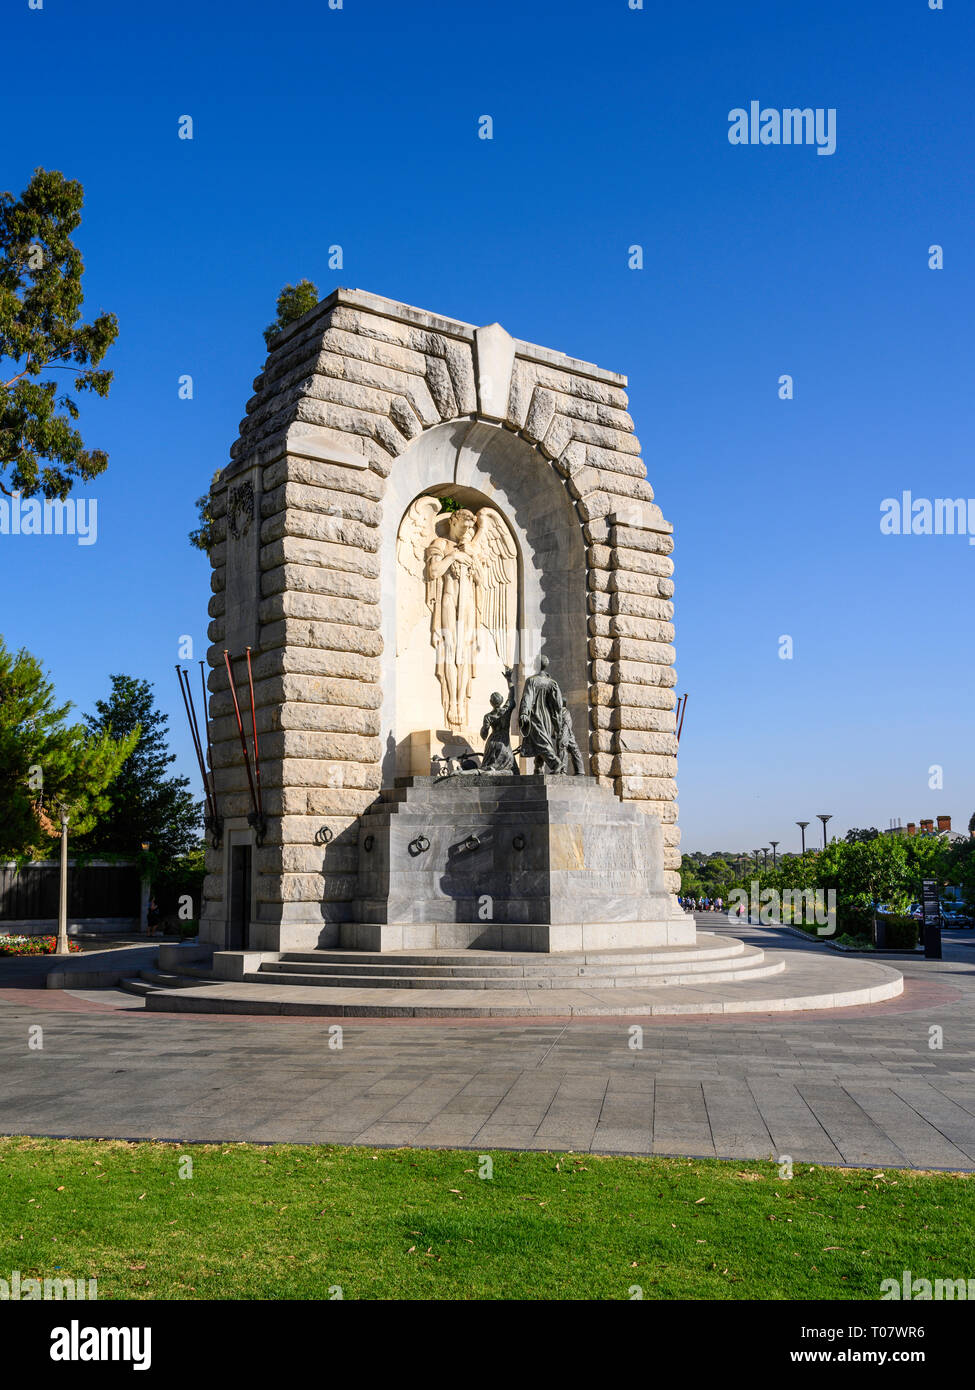 The National War Memorial is a monument in North Terrace, Adelaide, South Australia, commemorating those who served in the First World War. Stock Photo